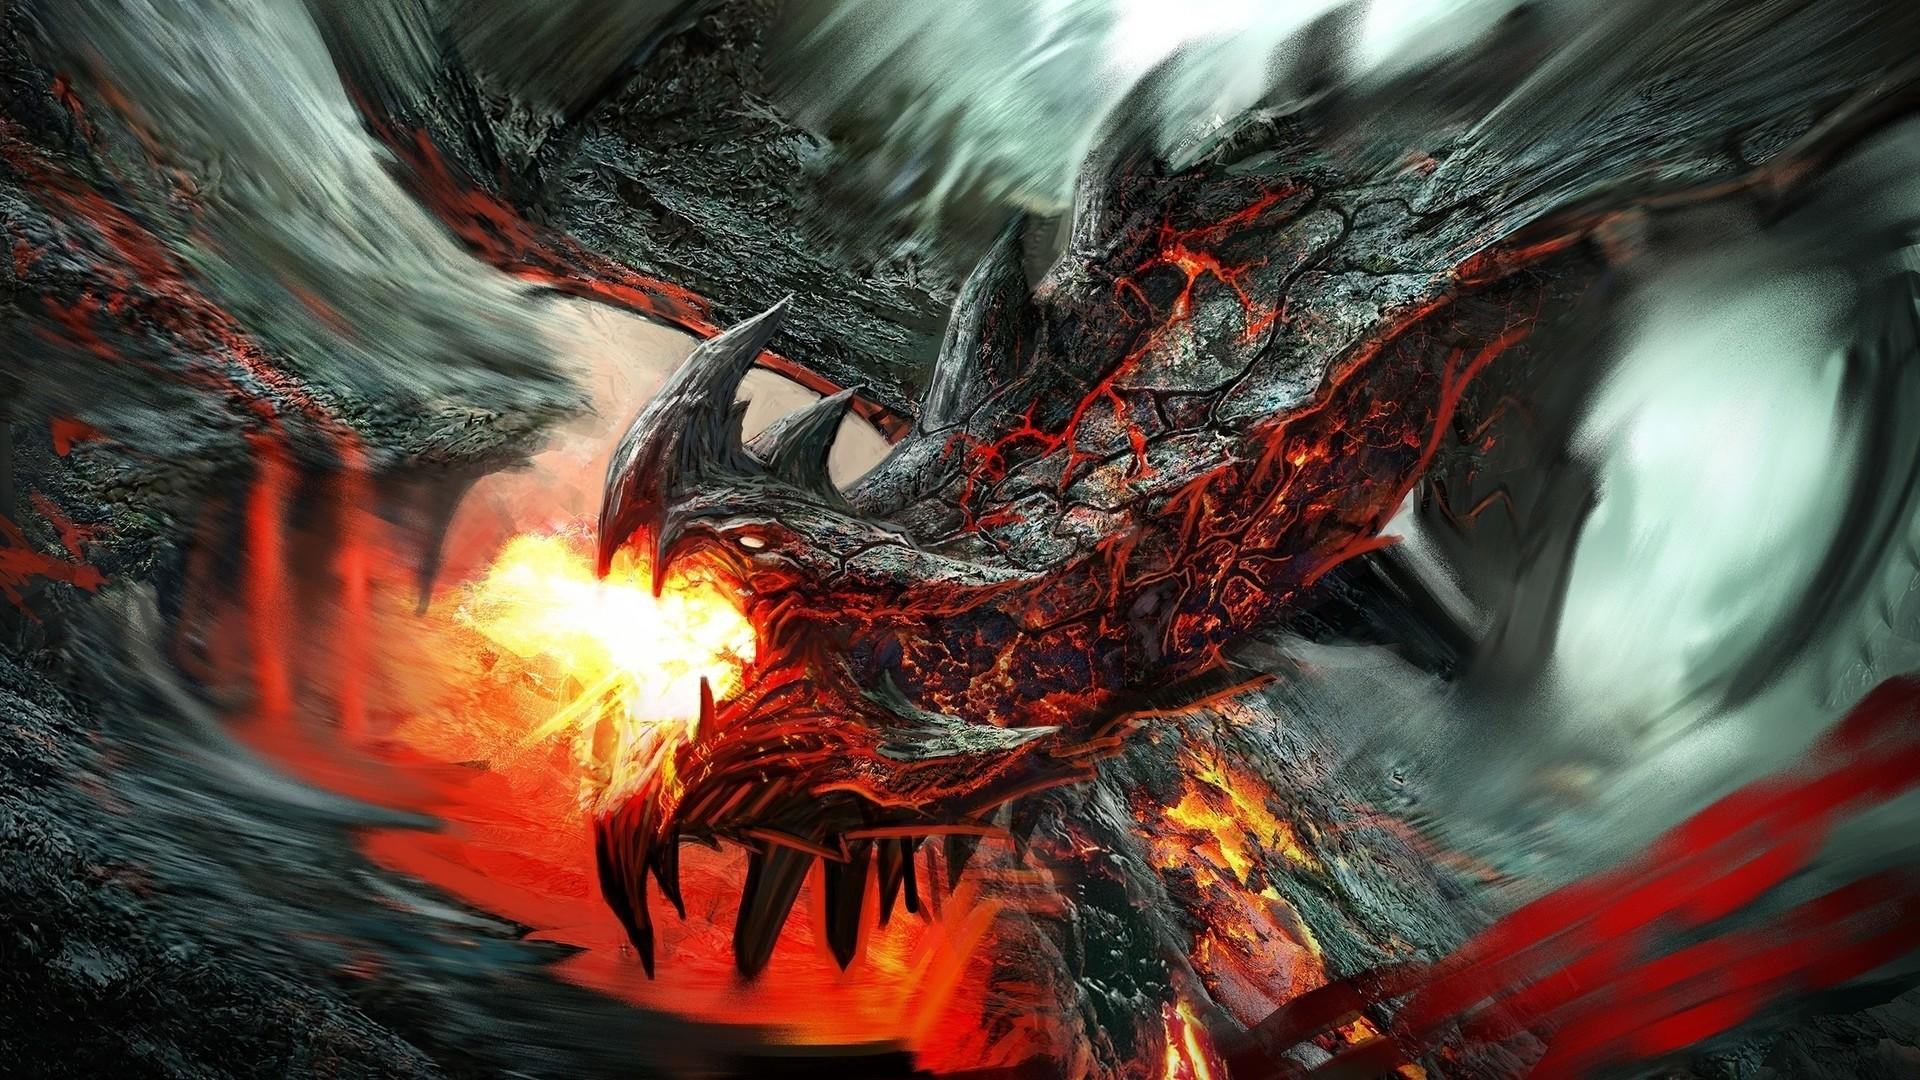 Download Cool Dragon Wallpapers Hd Backgrounds Download